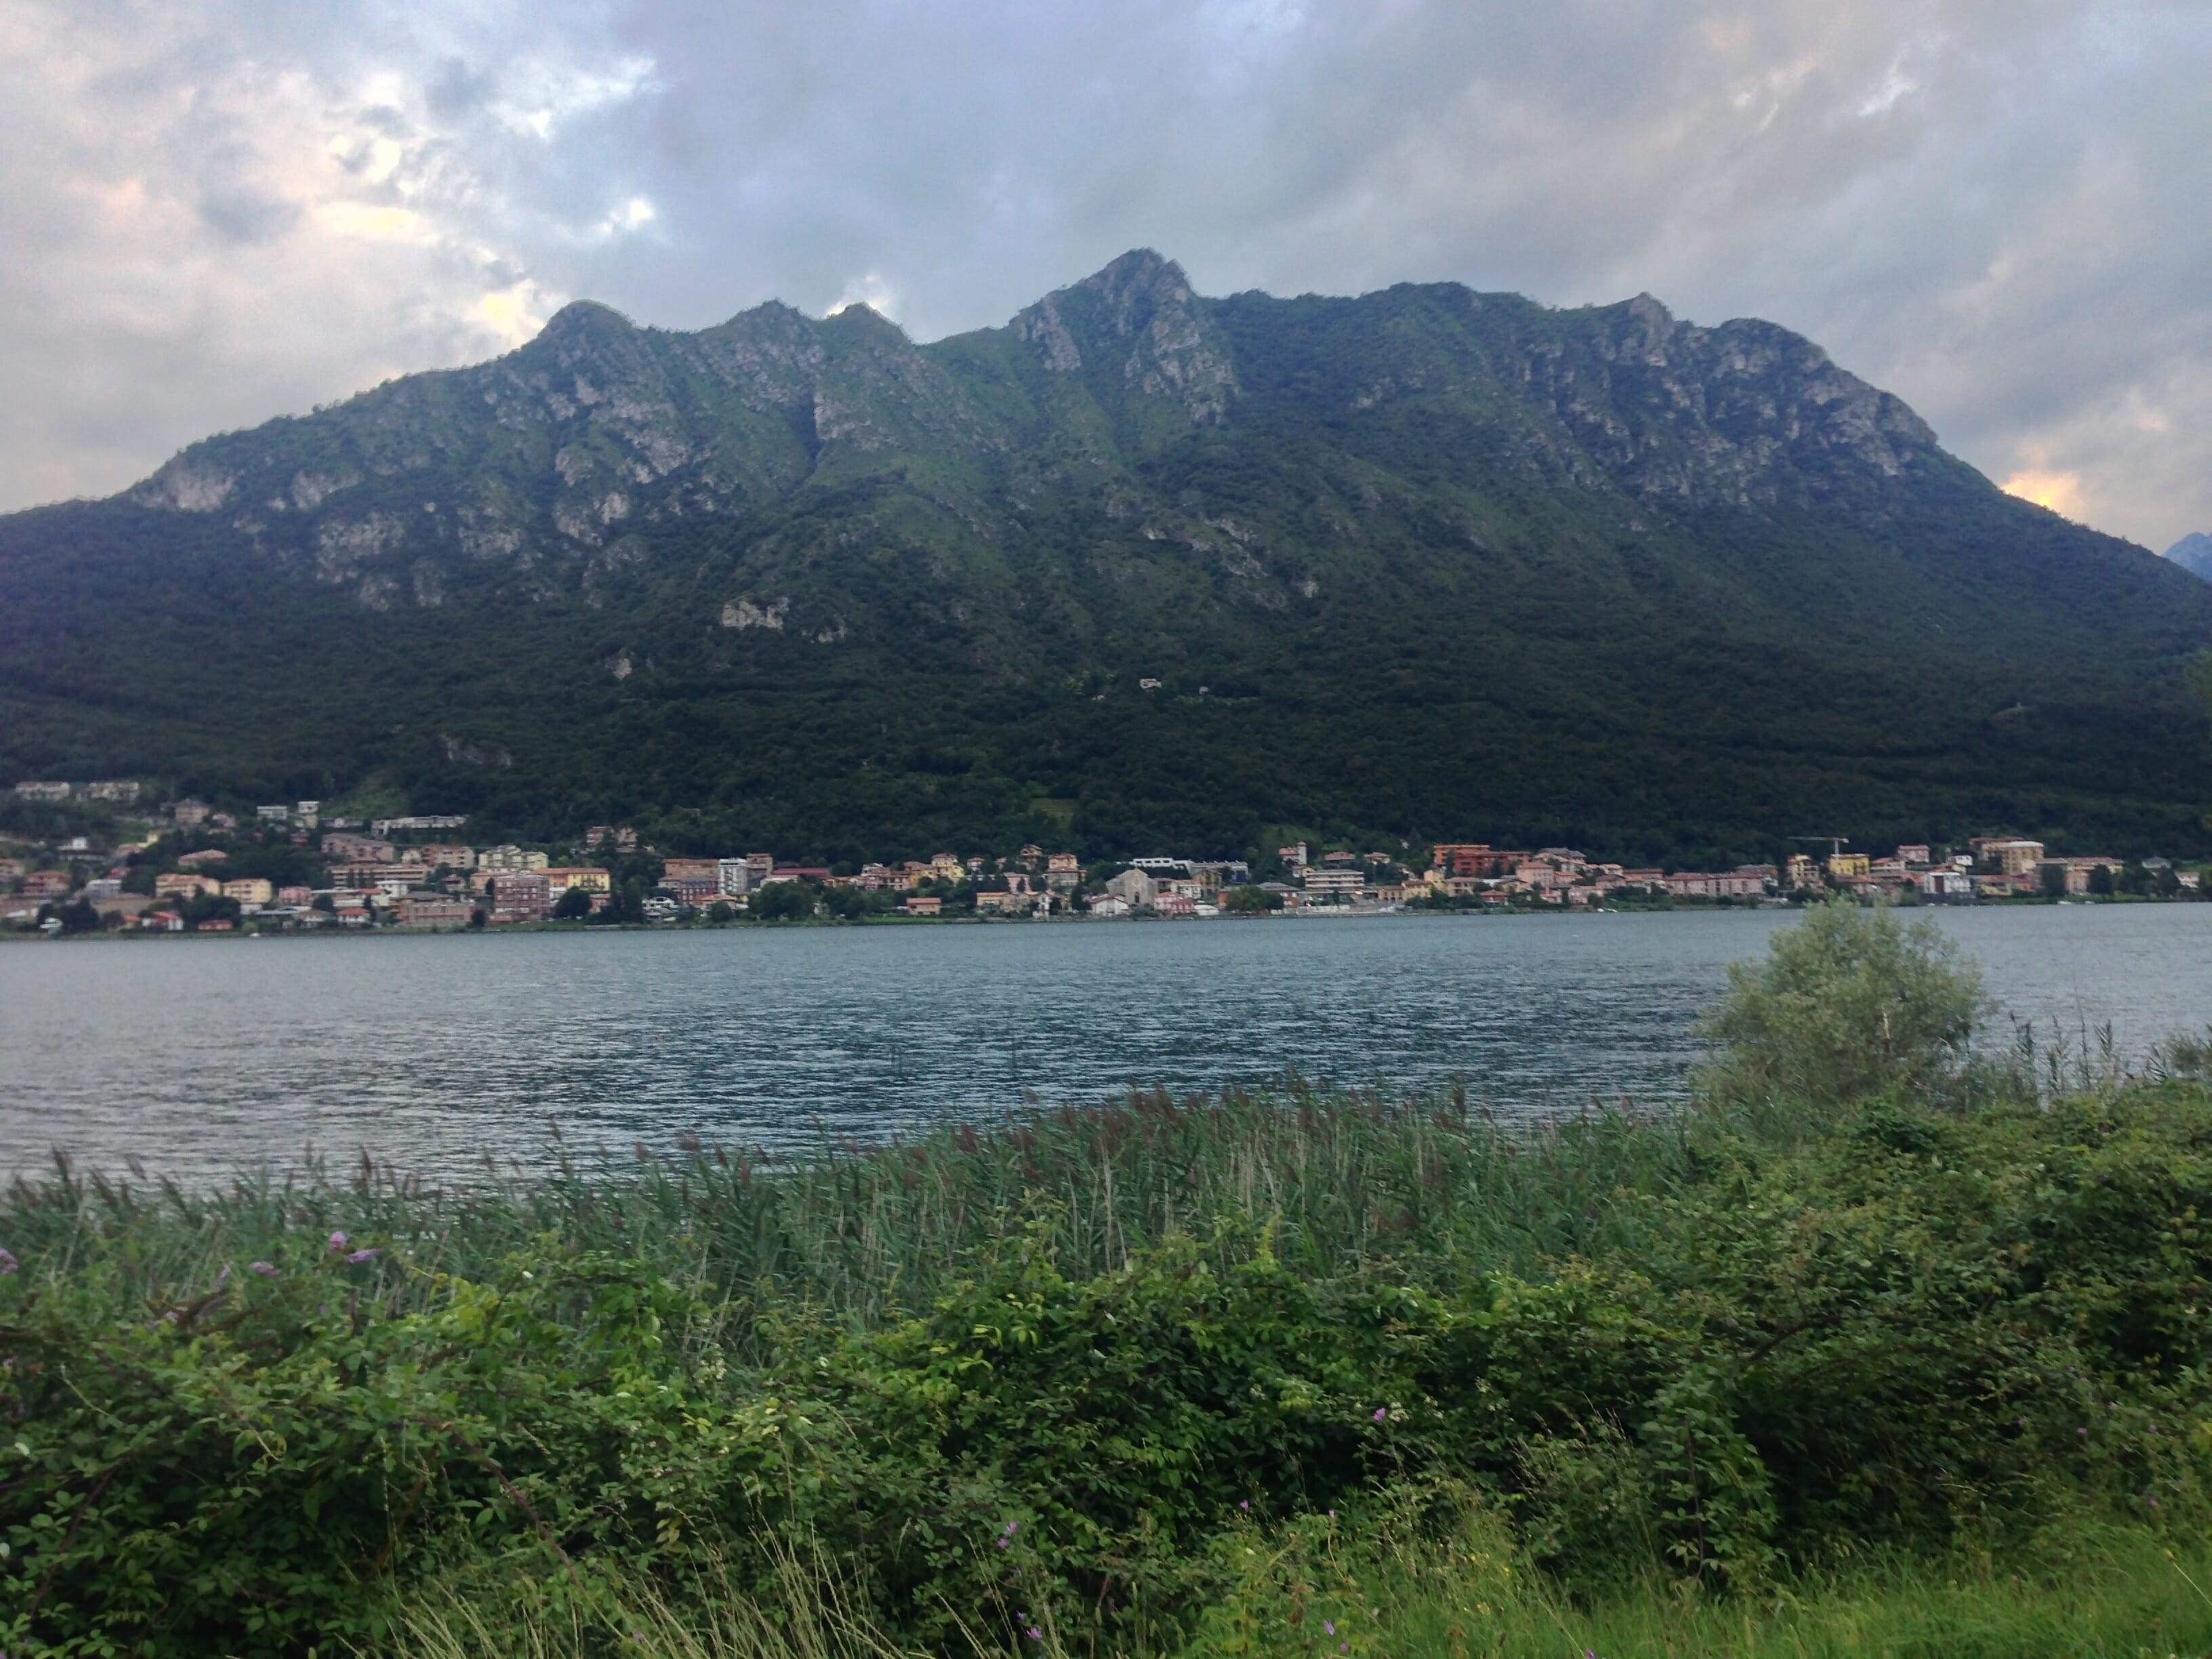 The view from Lecco.